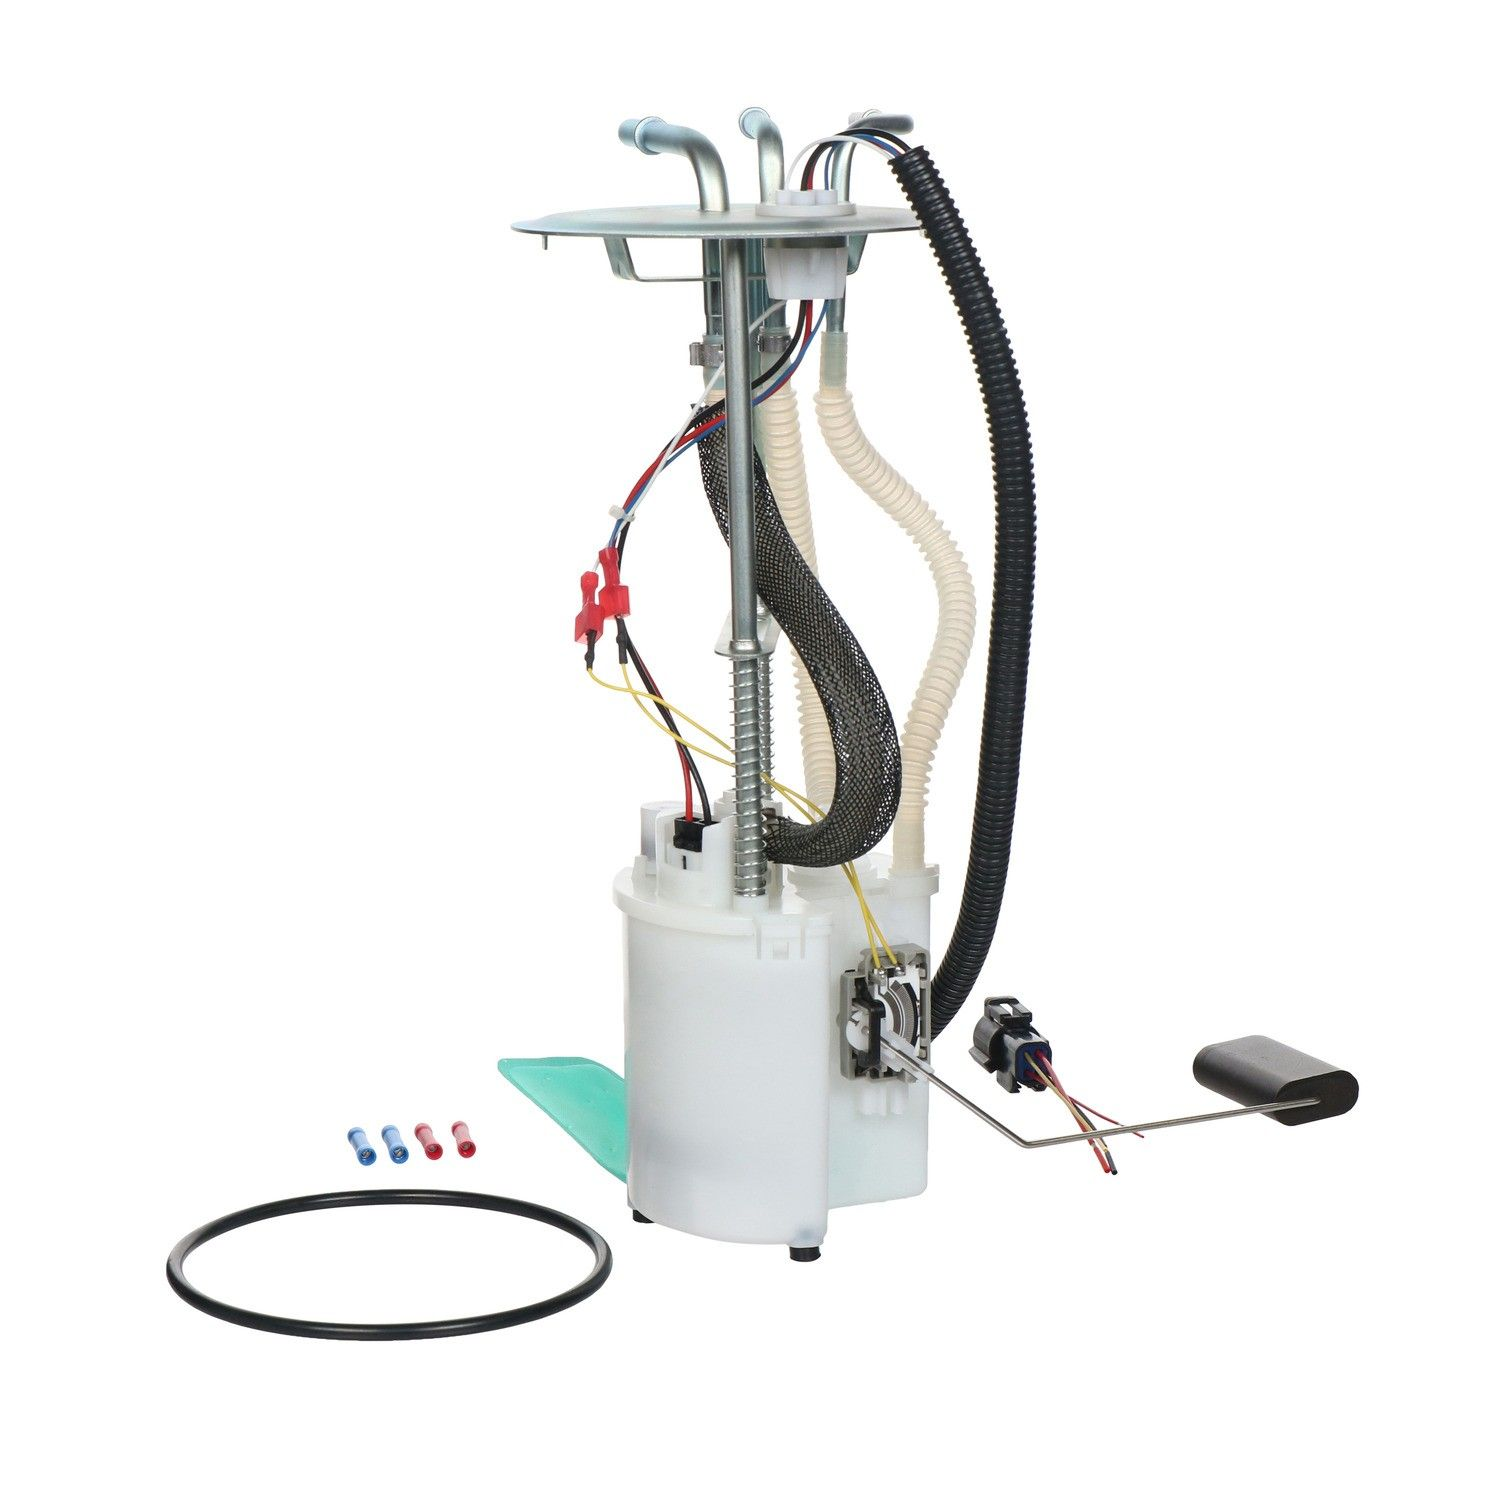 ford e 250 econoline fuel pump module assembly replacement airtex 1996 ford e 250 econoline fuel pump module assembly n a 6 cyl 4 9l airtex e2220m hanger module sender and pump center tank w 2 or 3 tube ports